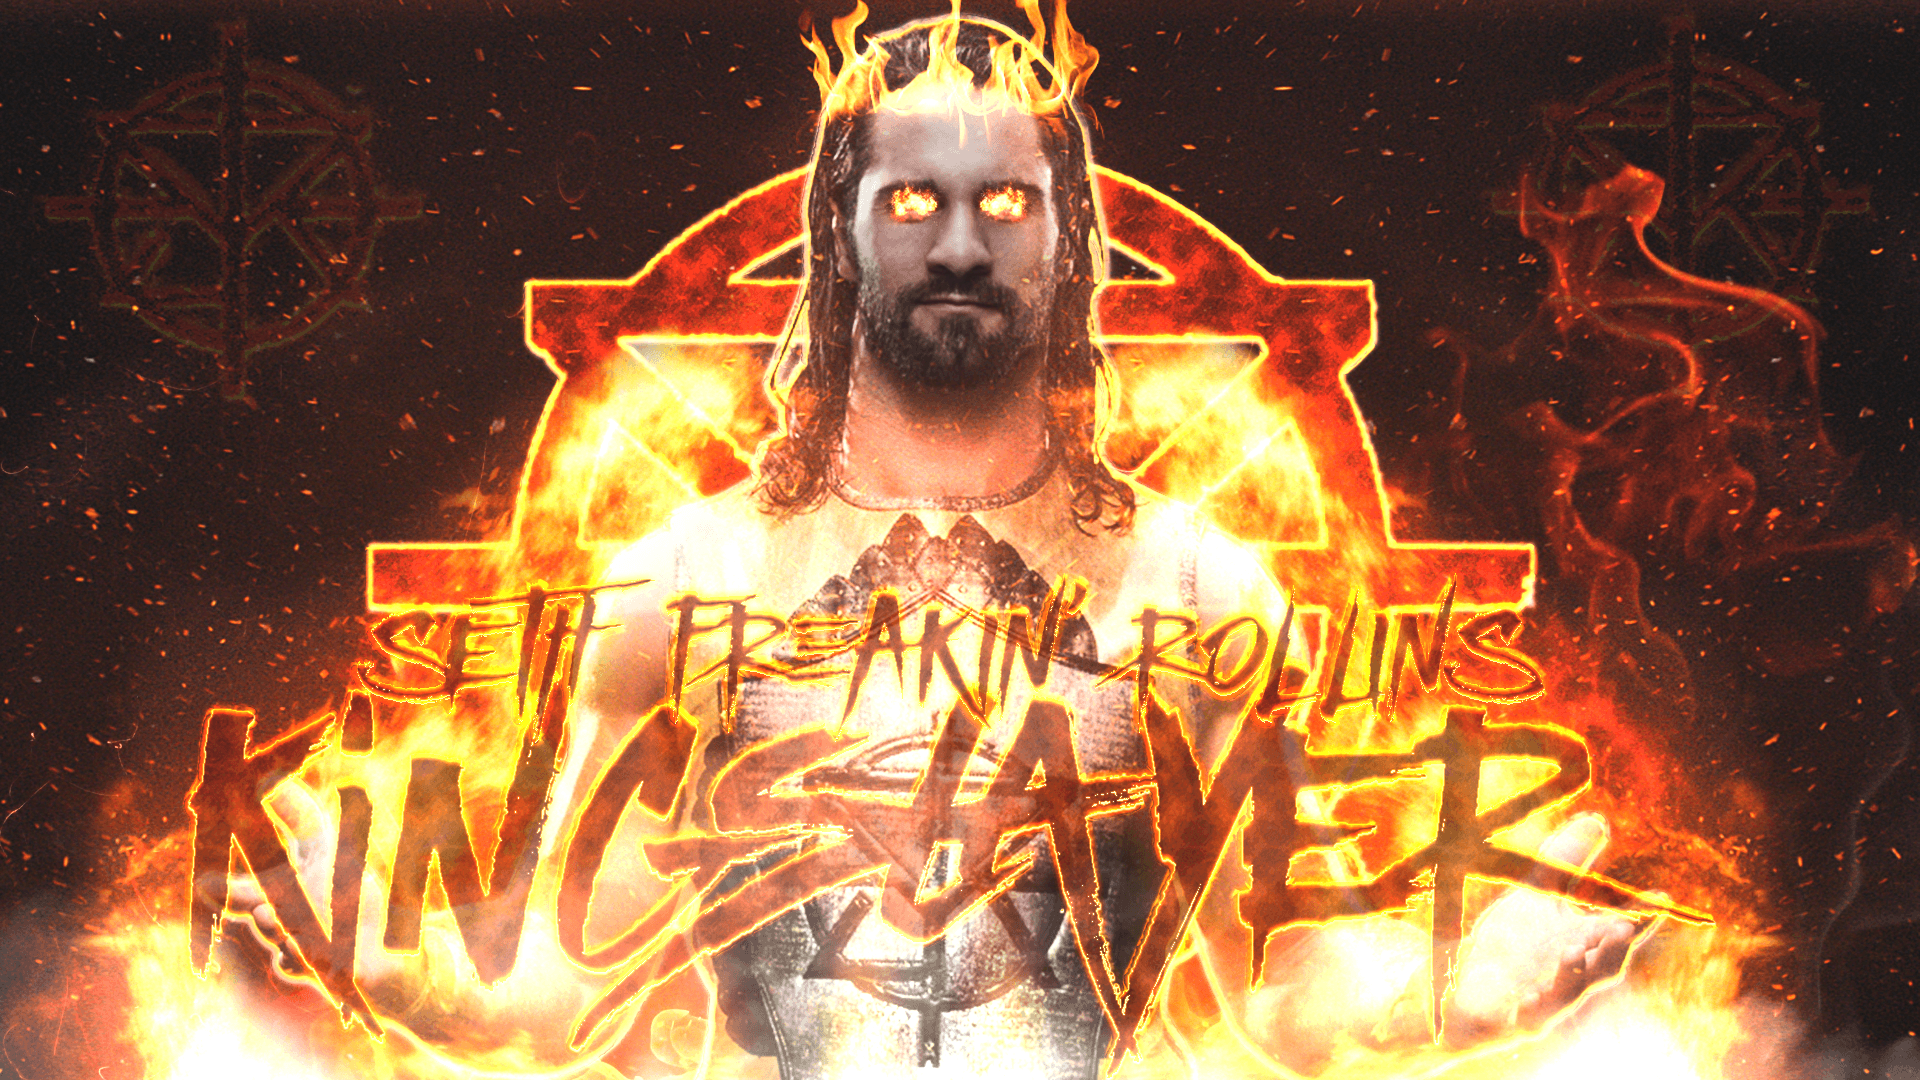 Seth Rollins Wallpapers   Top Seth Rollins Backgrounds 1920x1080